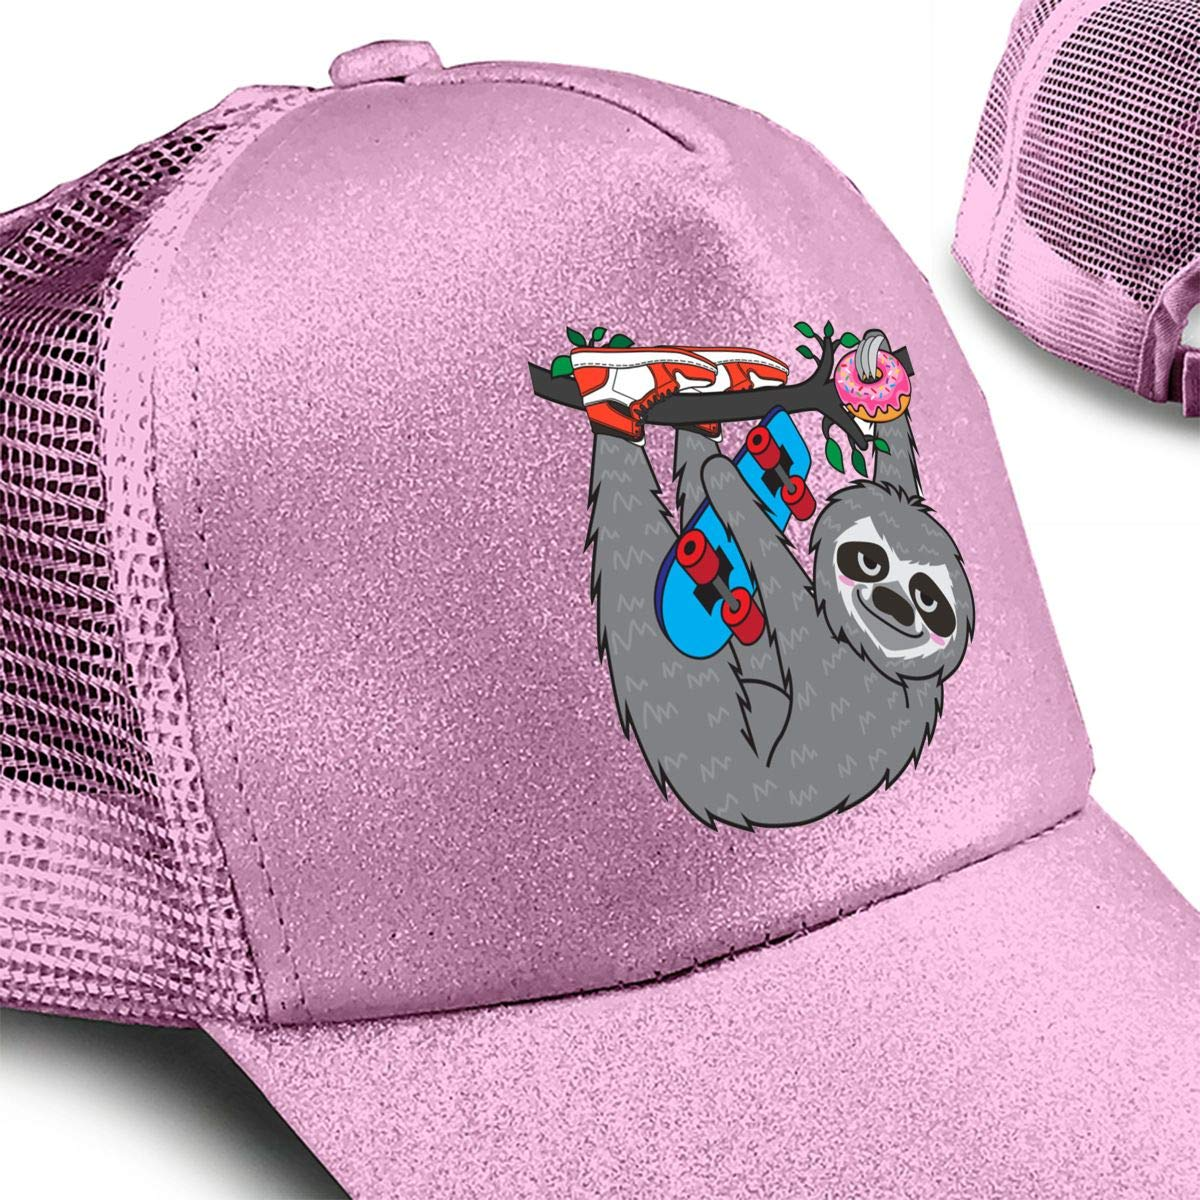 Skater Sloth and The Donuts Ponytail Messy High Bun Hat Ponycaps Baseball Cap Adjustable Trucker Cap Mesh Cap